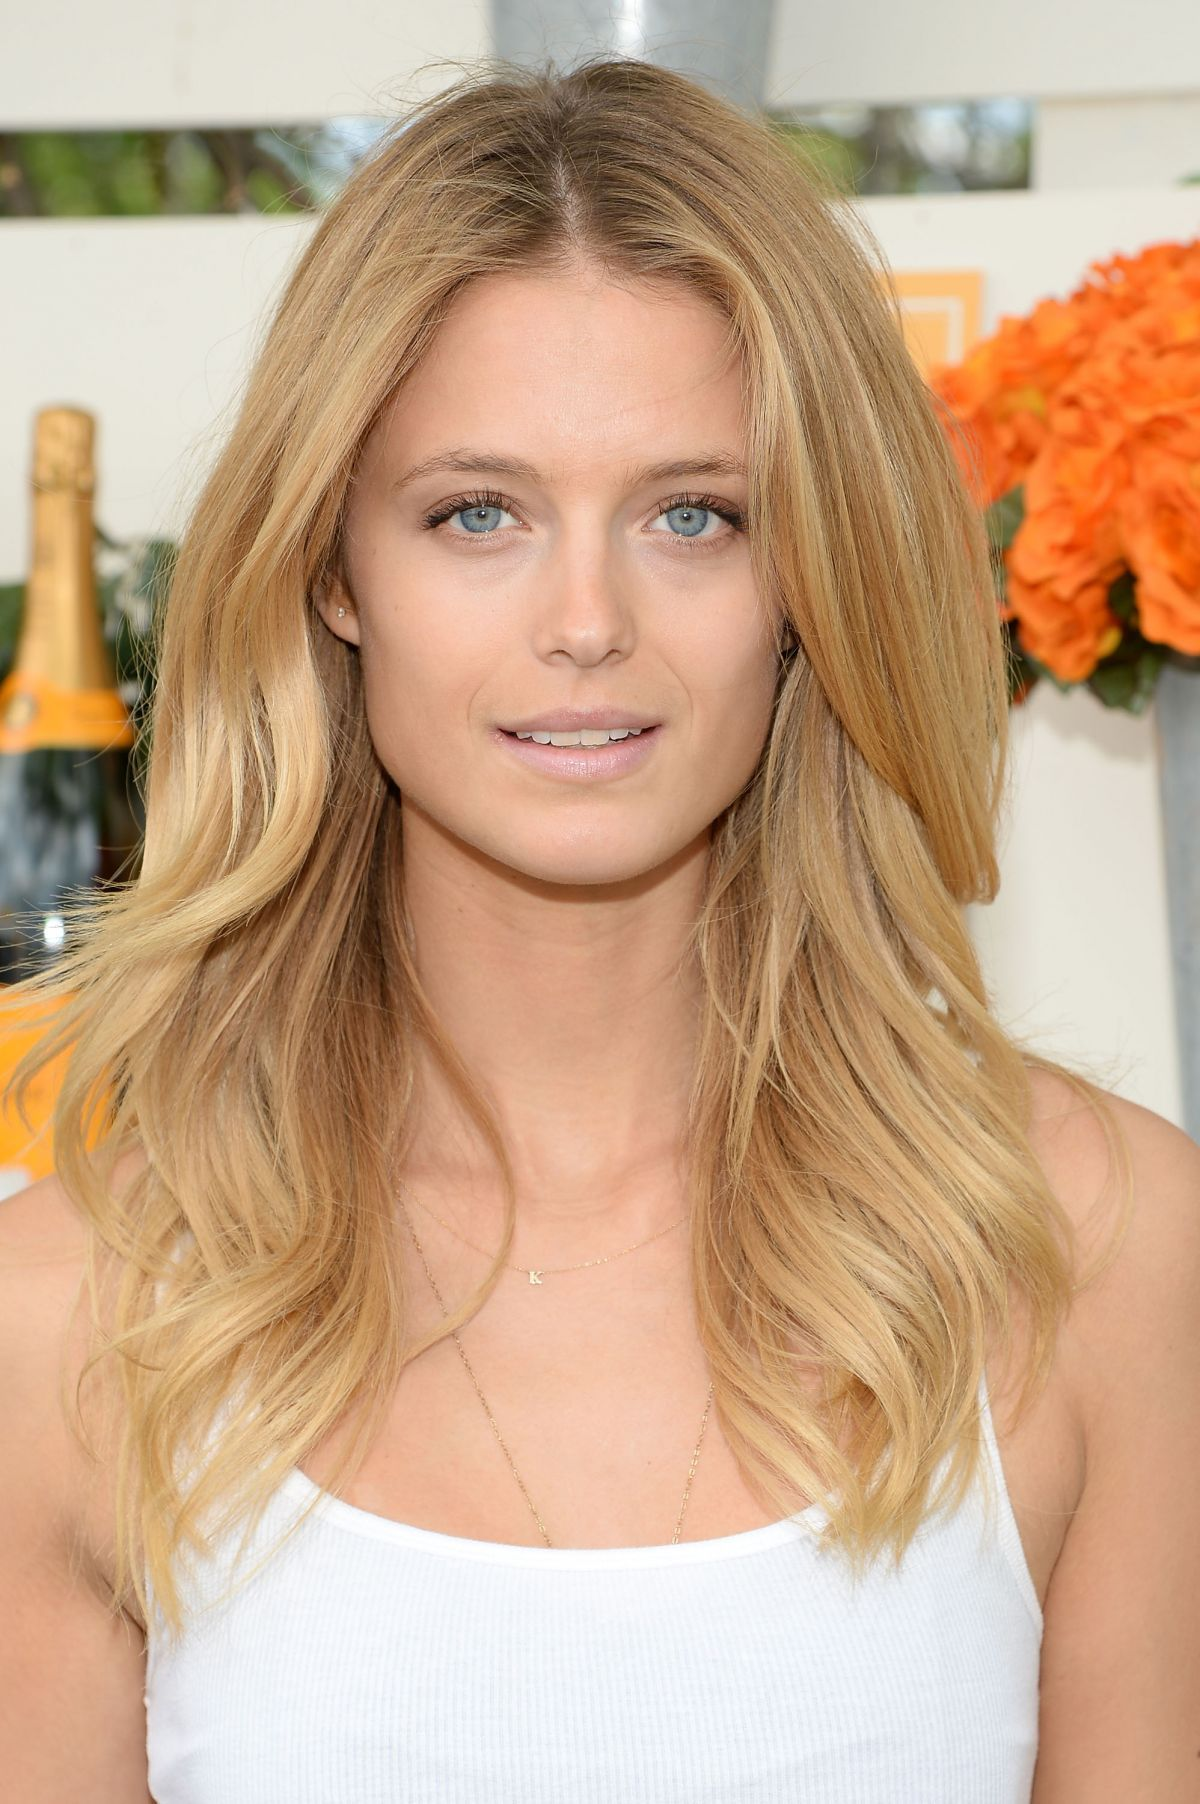 Figaro may 19th 2017 zhiboxs fashion show editorial models - Kate Bock Born 30 January Is A Canadian Fashion Model She Was Featured In The Sports Illustrated Swimsuit Issue From 2013 To Being Voted Rookie Of The